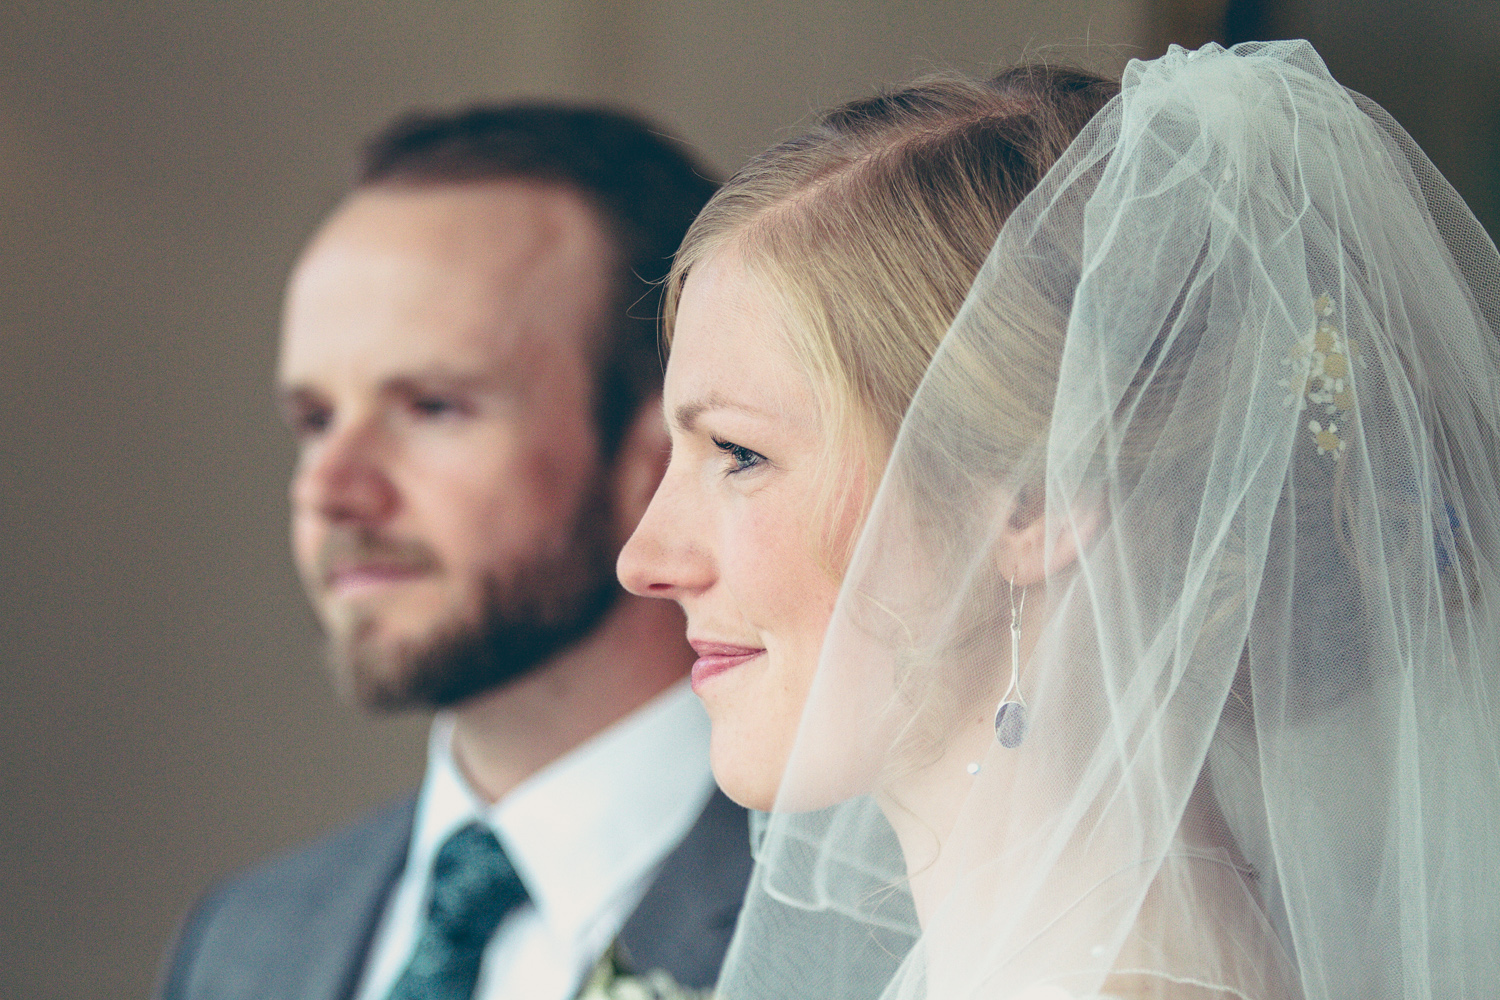 The wedding of Ellie and Iain Whittaker at Avon Gorge Hotel, Bristol, UK on 3 August 2014.